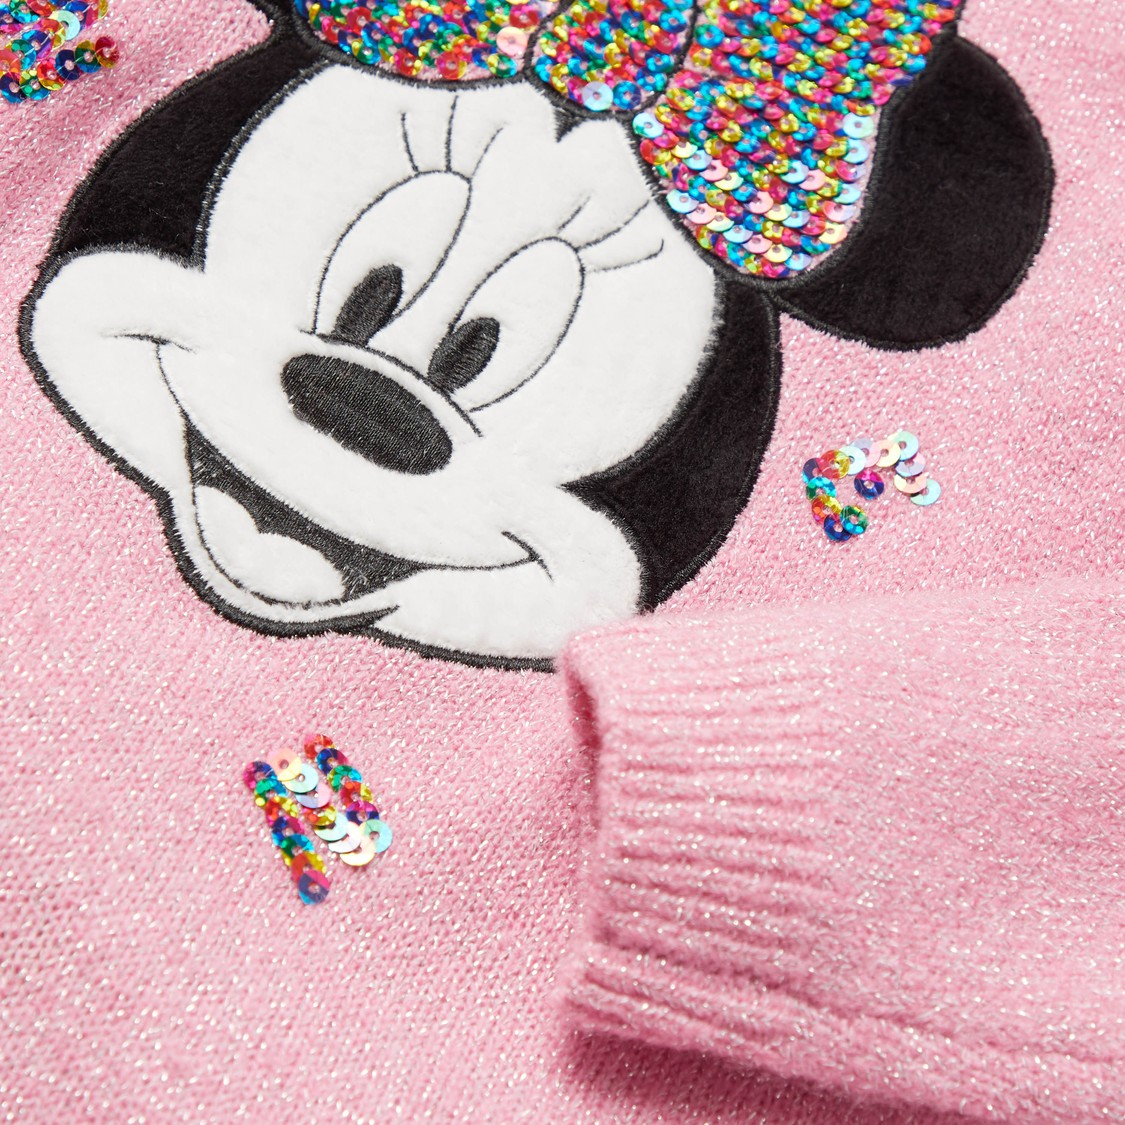 Minnie Mouse Embellished Sweater Dress with Closed Feet Stockings